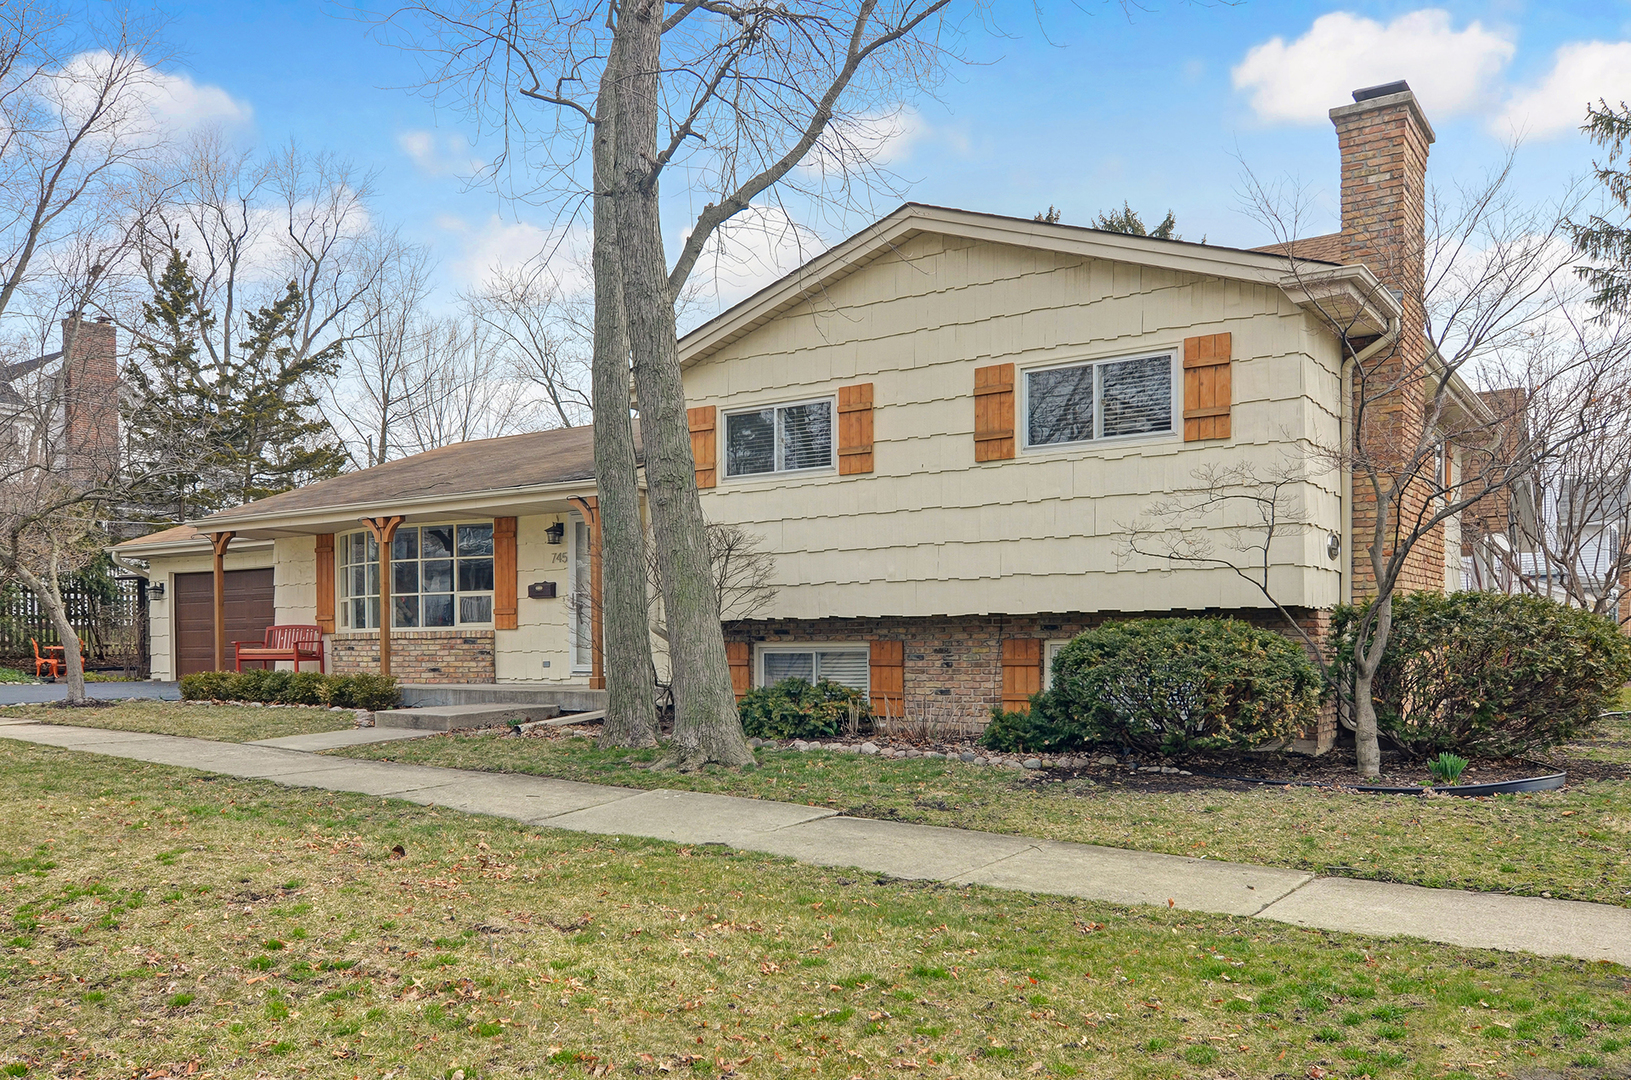 745 Town Place, Hinsdale, Illinois 60521